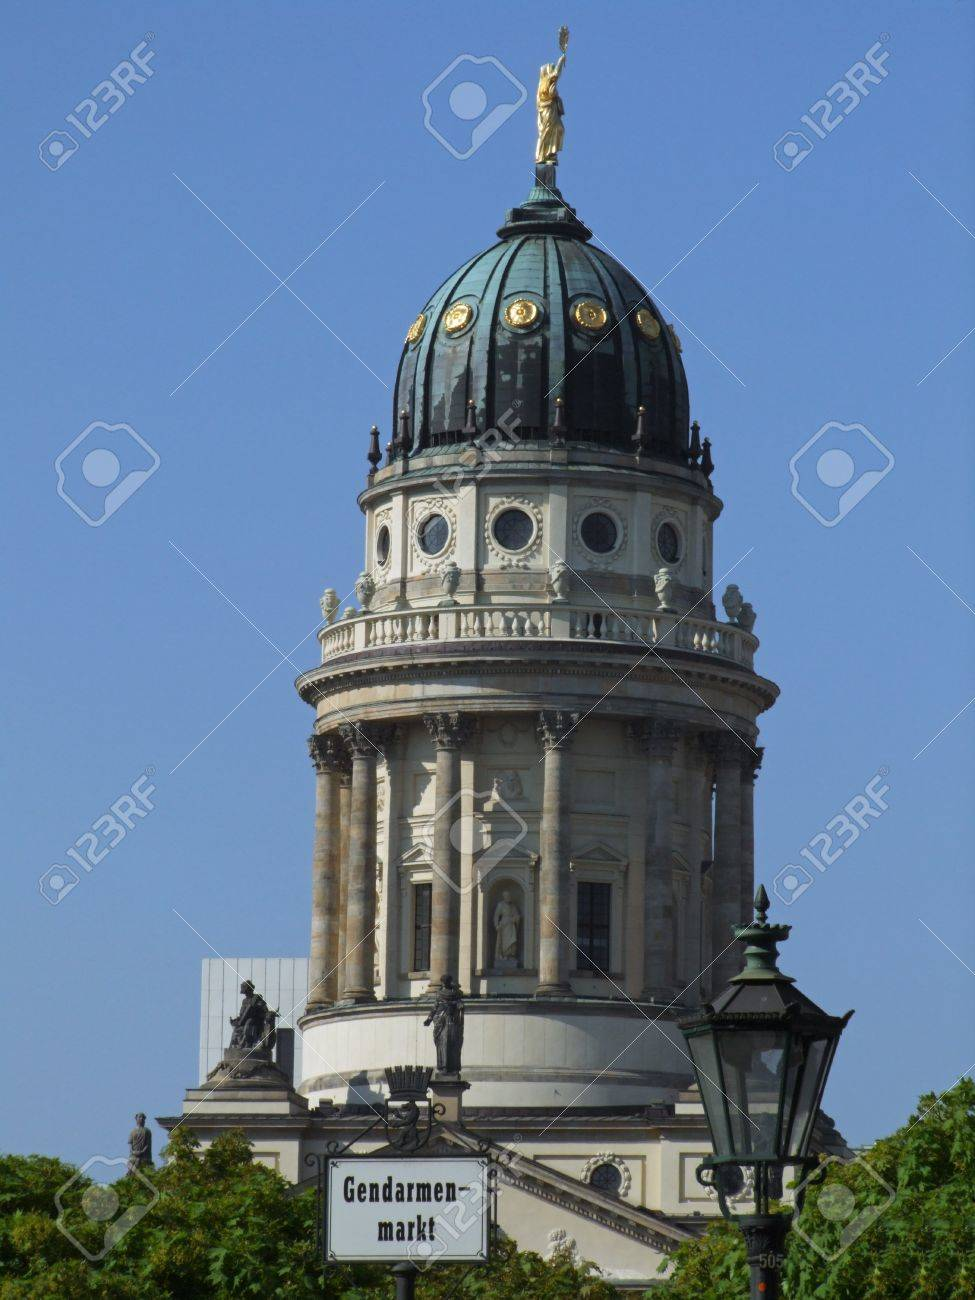 French church of Friedrichstadt, best known as French Cathedral, in Berlin (Germany). The domed tower, resembling that of Deutscher Dom, was built in 1785  to give the Gendarmenmarkt a symmetric design. Stock Photo - 8193794